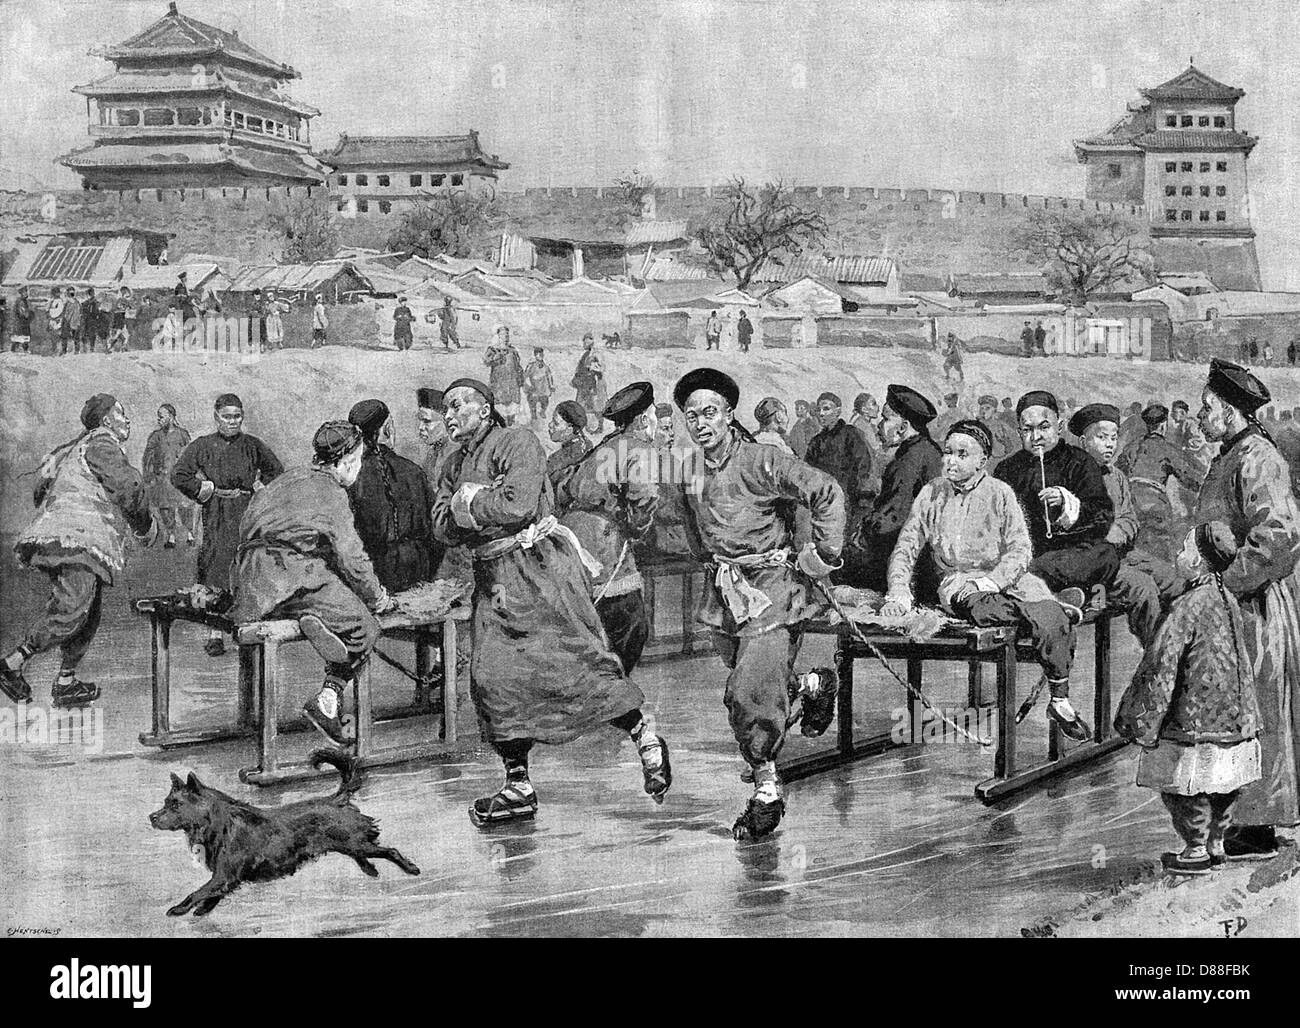 Chinese Skaters 1896 - Stock Image